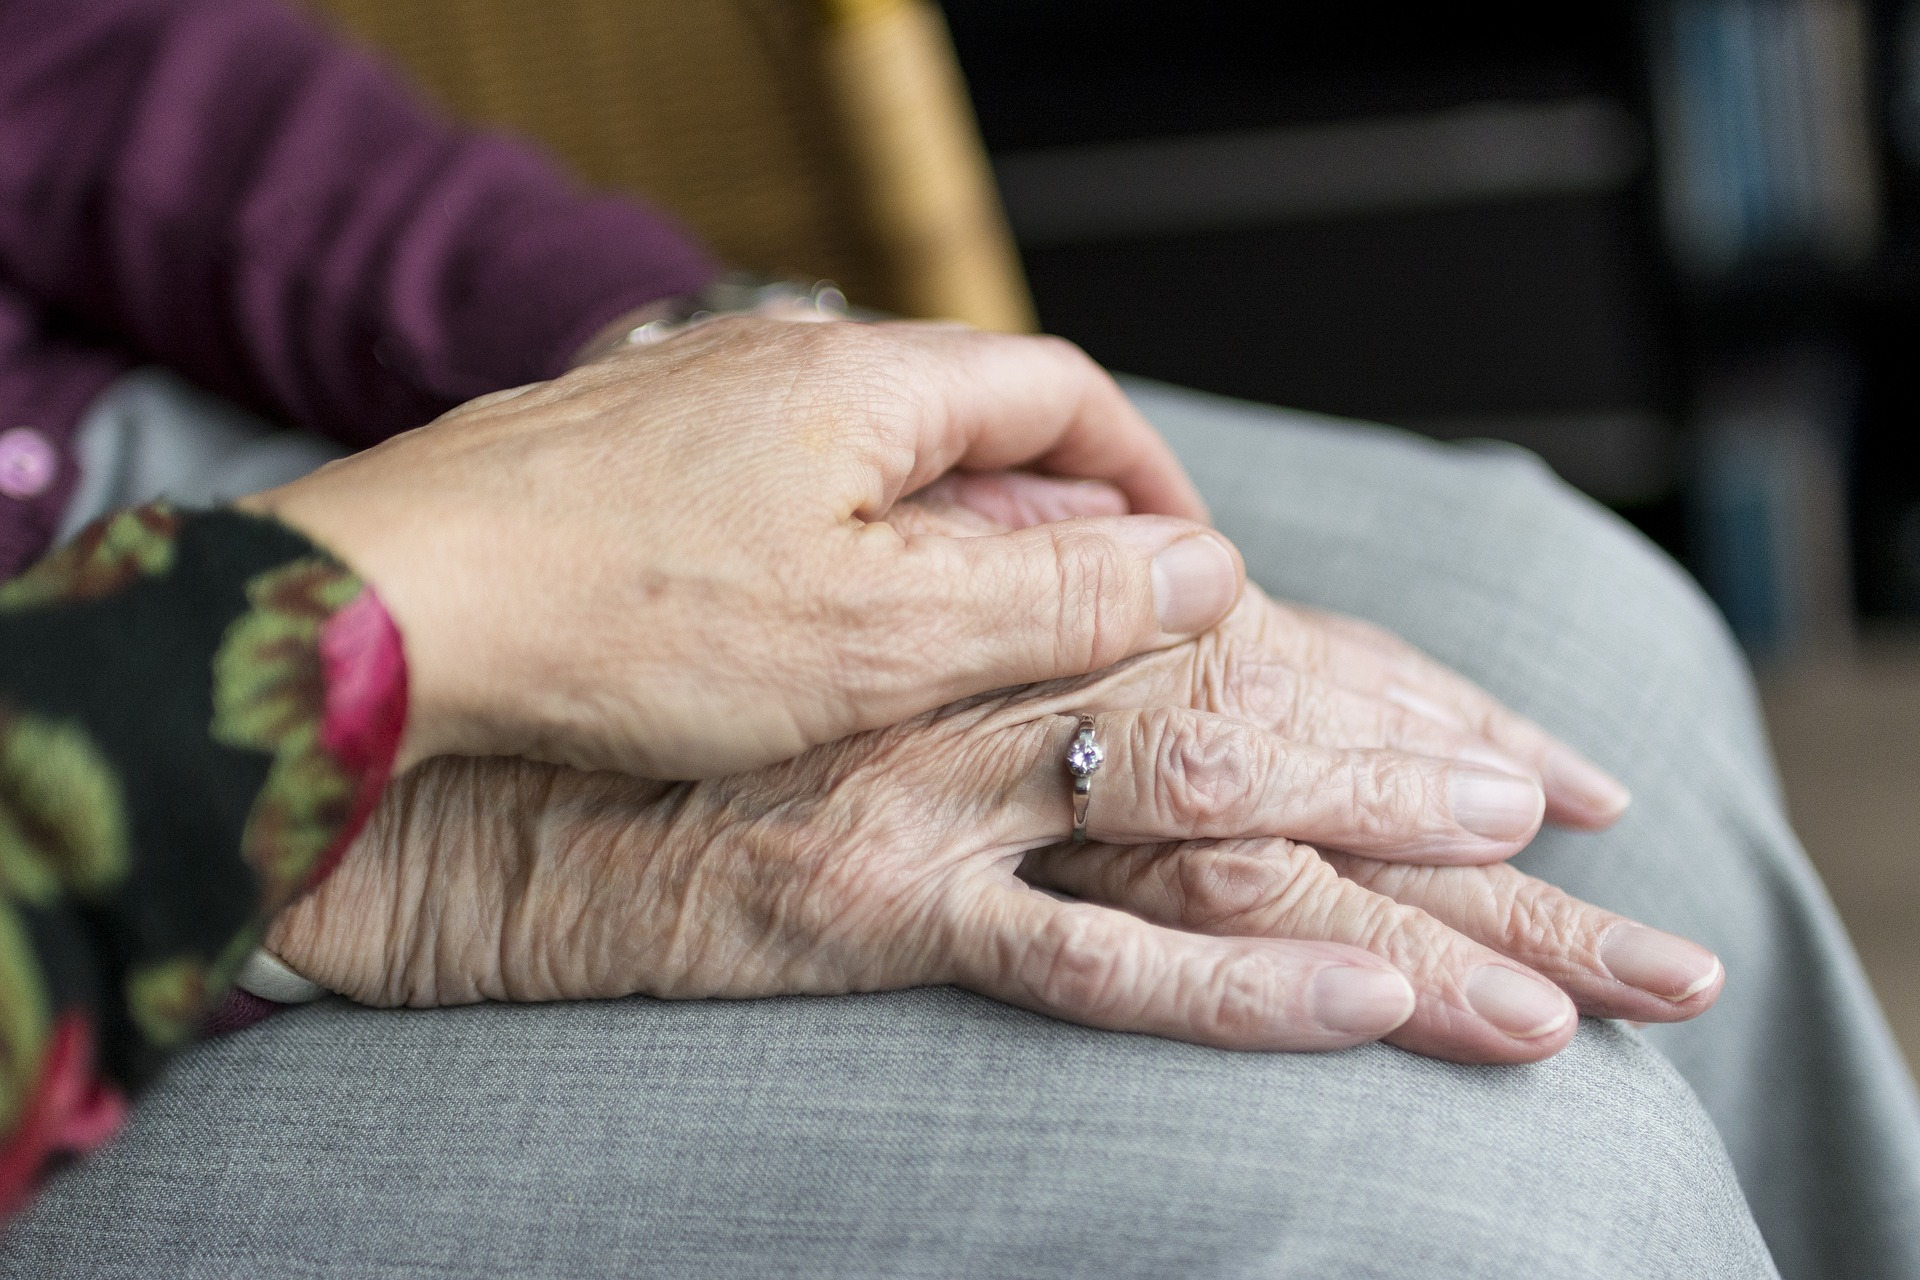 Read more about this featured post, Do you have a financial plan to fund your elder care needs?